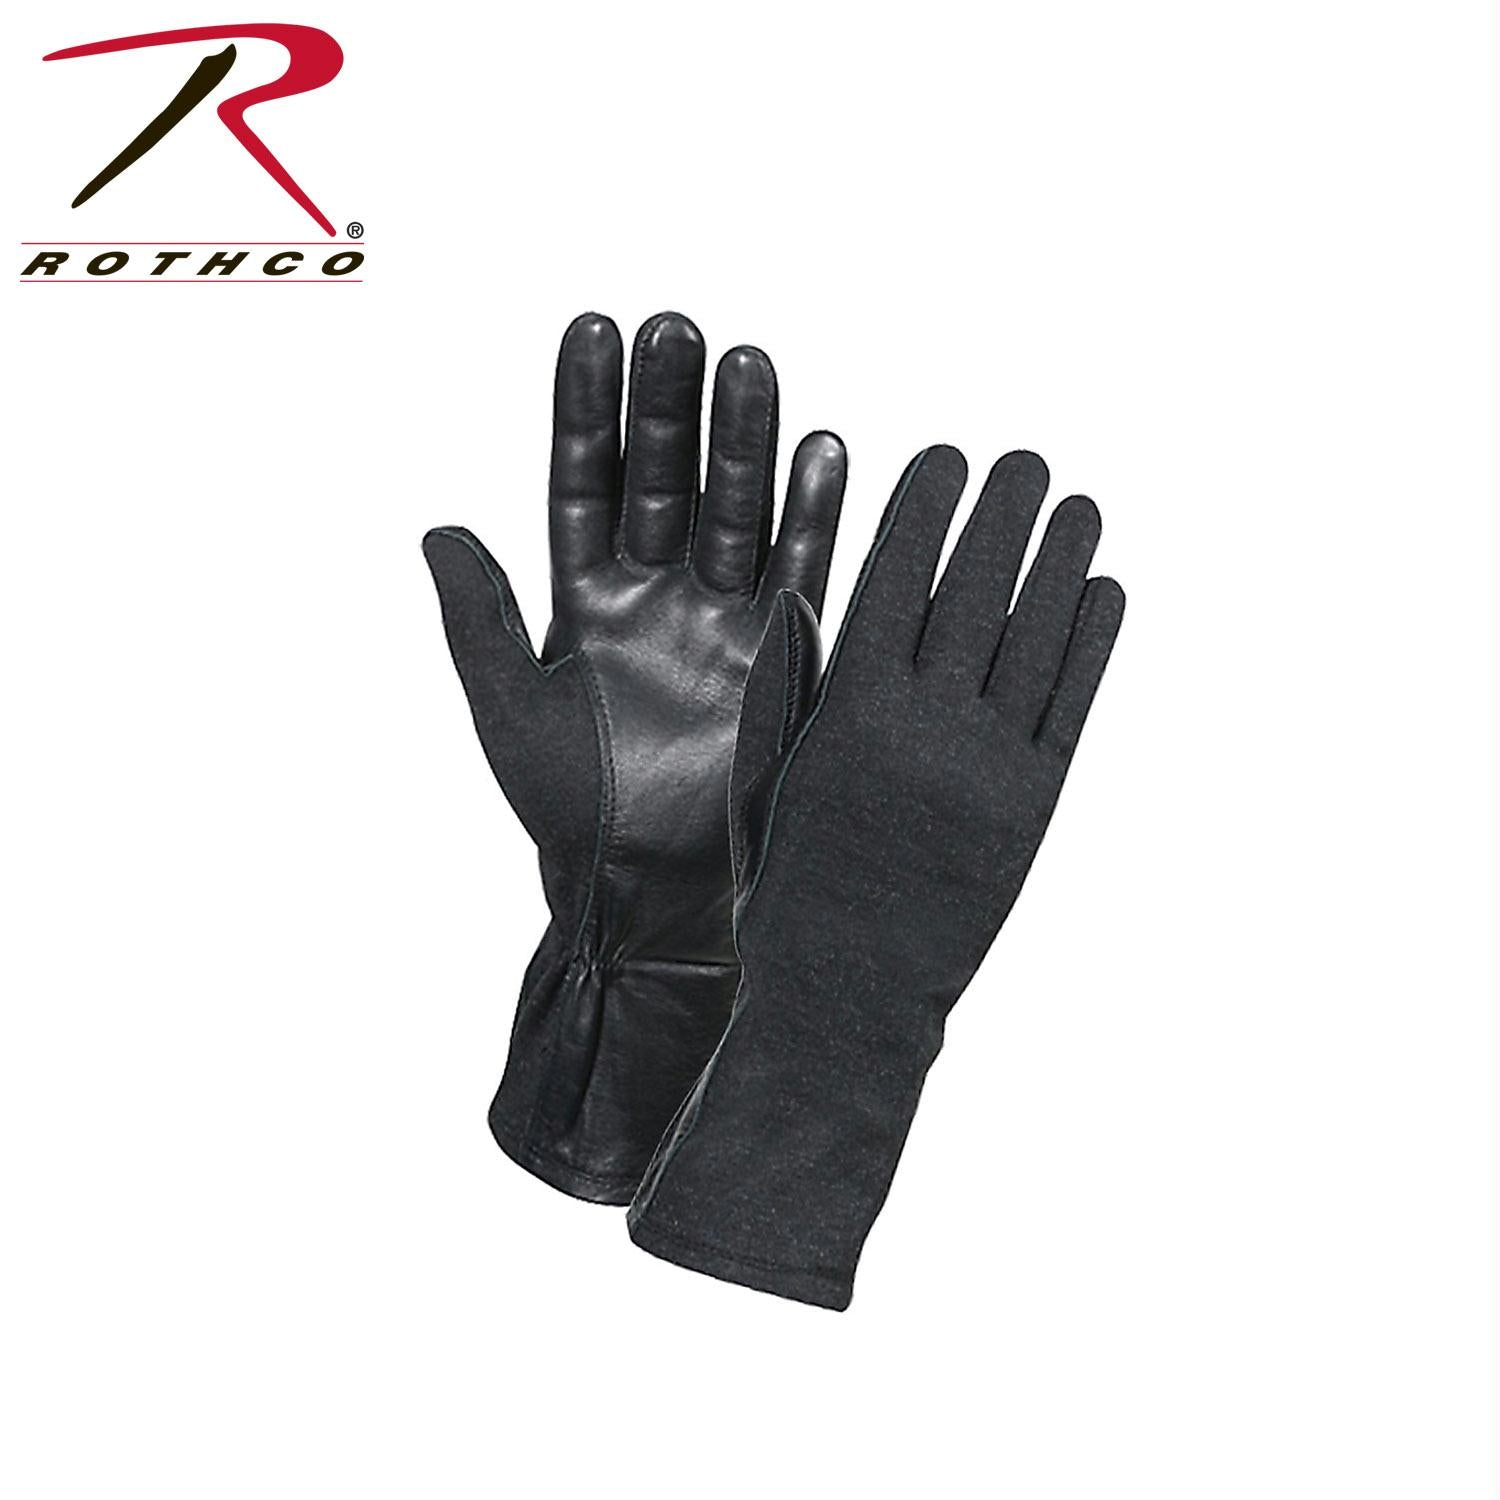 Rothco G.I. Type Flame & Heat Resistant Flight Gloves - Black / 10